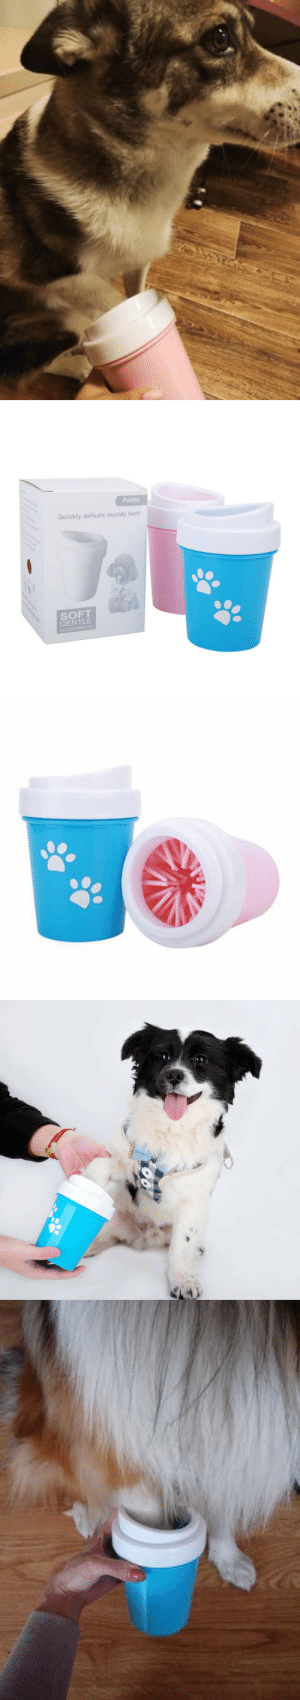 "awesomage:   PAW CLEANER     Now your best friend can have all the muddy dirty fun he wants without bringing it all into your home or vehicle.    30% OFF plus Free Worldwide Shipping with coupon code ""CUDDLING""    All funds gathered will be donated for rescue dog shelters    SUPPORTS US NOW, ORDER AND SHARE OUR CAUSE!https://www.doggiemon.com/products/paw-cleaner : awesomage:   PAW CLEANER     Now your best friend can have all the muddy dirty fun he wants without bringing it all into your home or vehicle.    30% OFF plus Free Worldwide Shipping with coupon code ""CUDDLING""    All funds gathered will be donated for rescue dog shelters    SUPPORTS US NOW, ORDER AND SHARE OUR CAUSE!https://www.doggiemon.com/products/paw-cleaner"